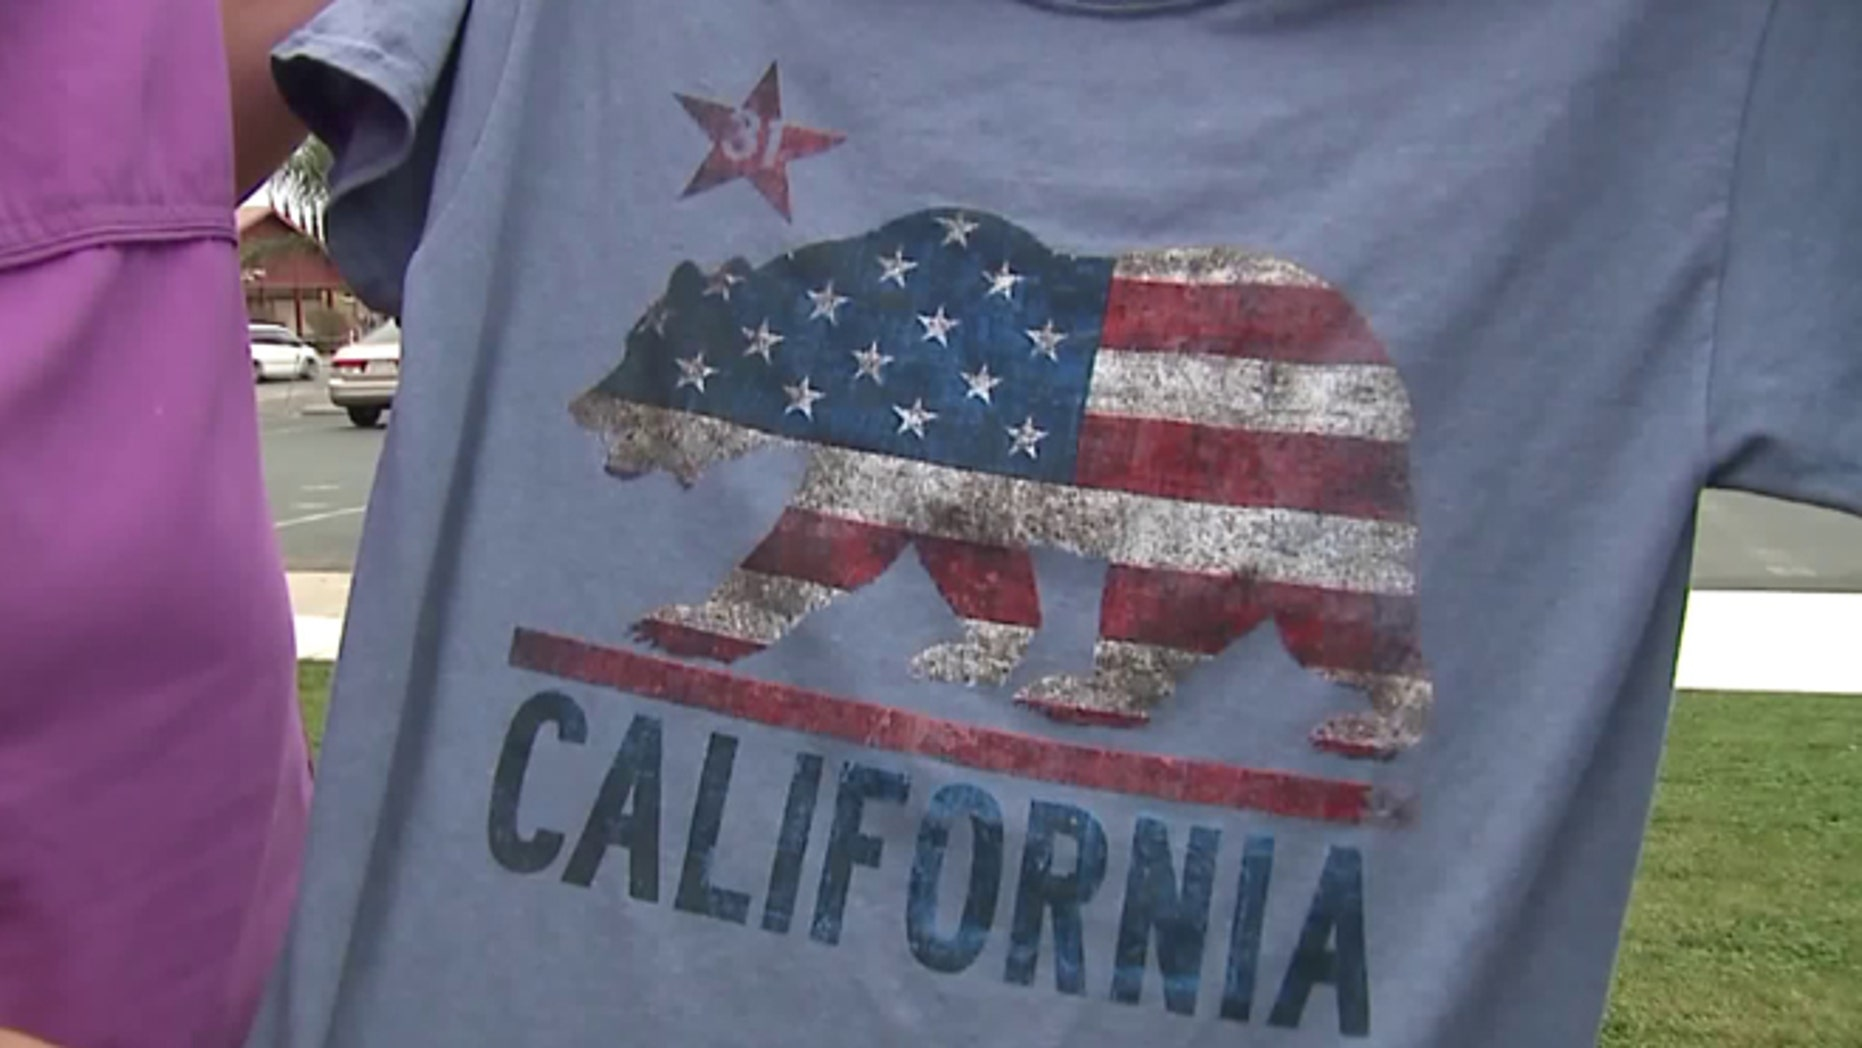 California student Dustin Cole, 12, received a dress code violation last week for wearing this shirt at his public school in Olivehurst.